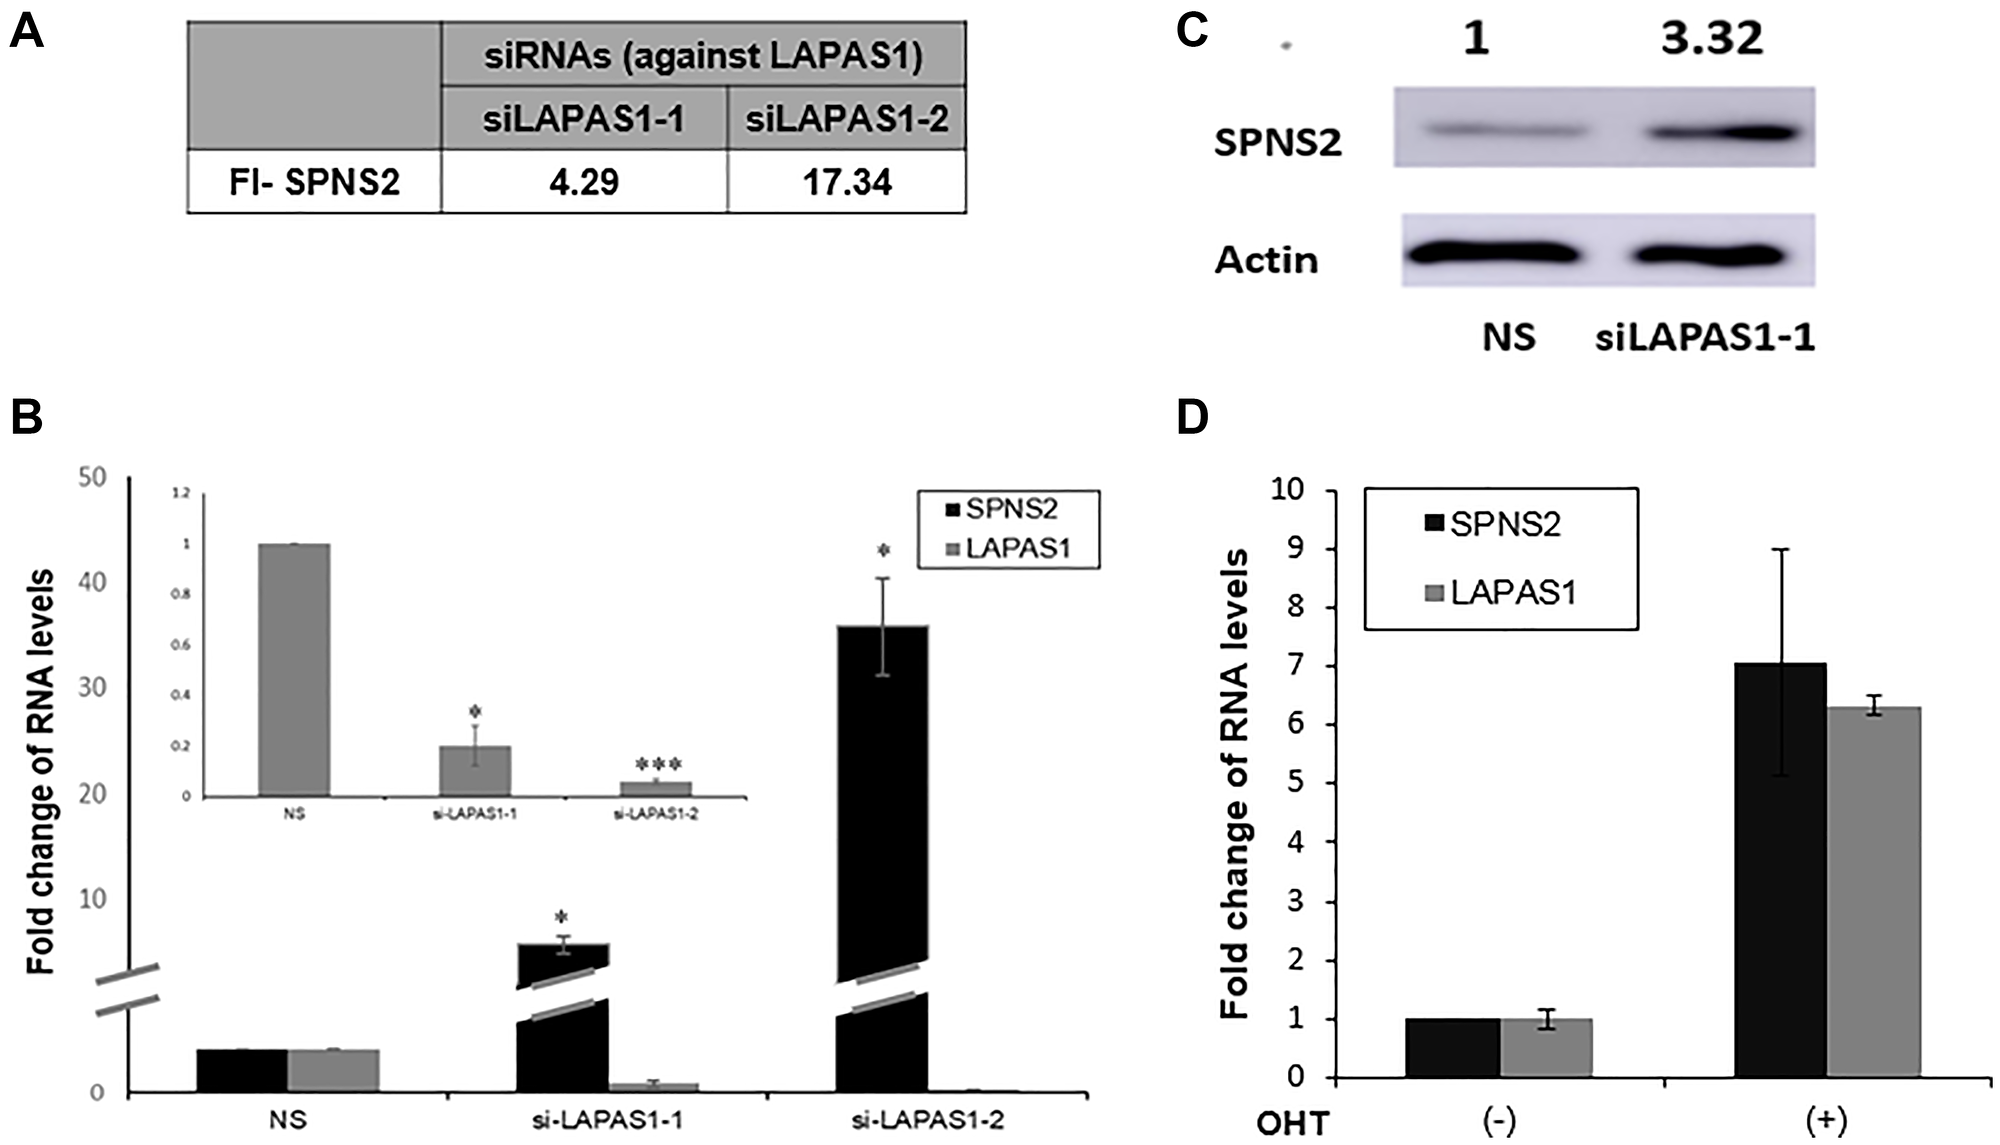 SPNS2 levels increase following LAPAS1 silencing or E2F1 activation.